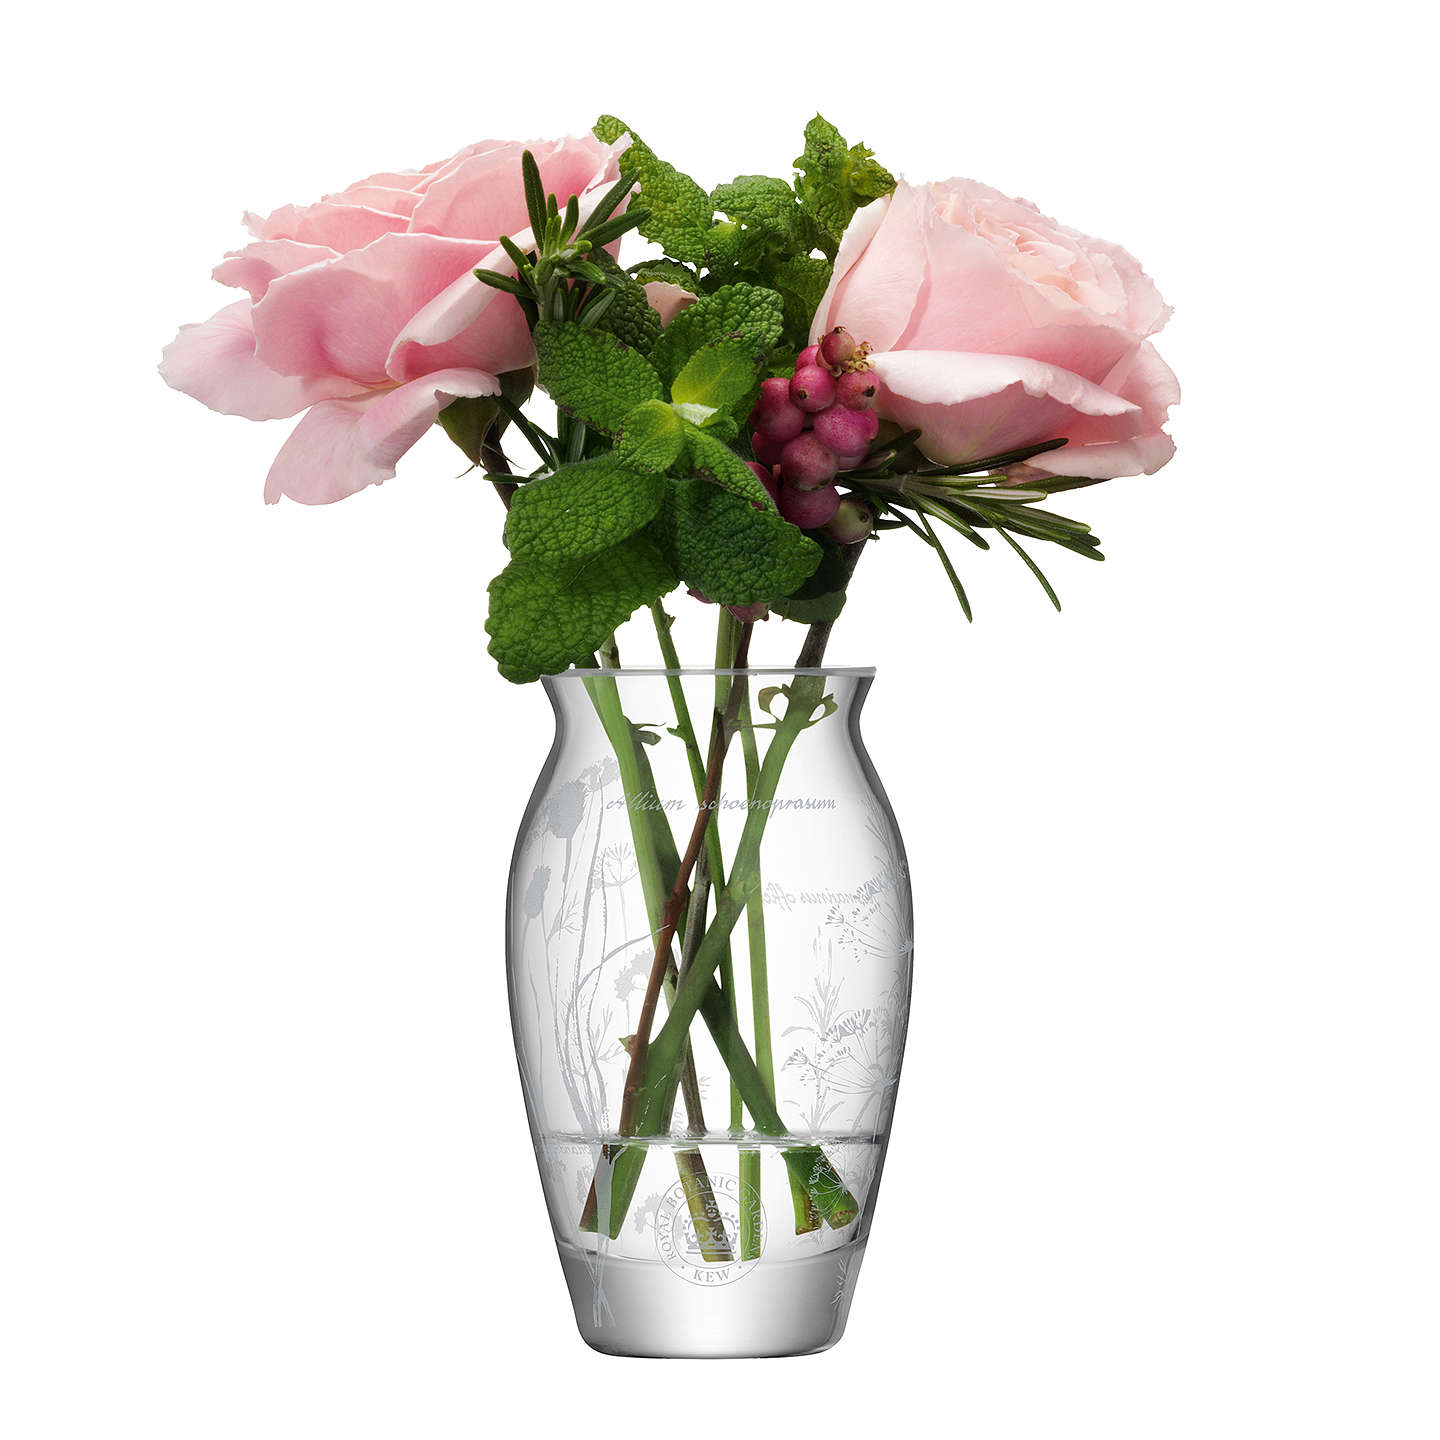 BuyKew Royal Botanic Gardens Single Bud Vase Online at johnlewis.com